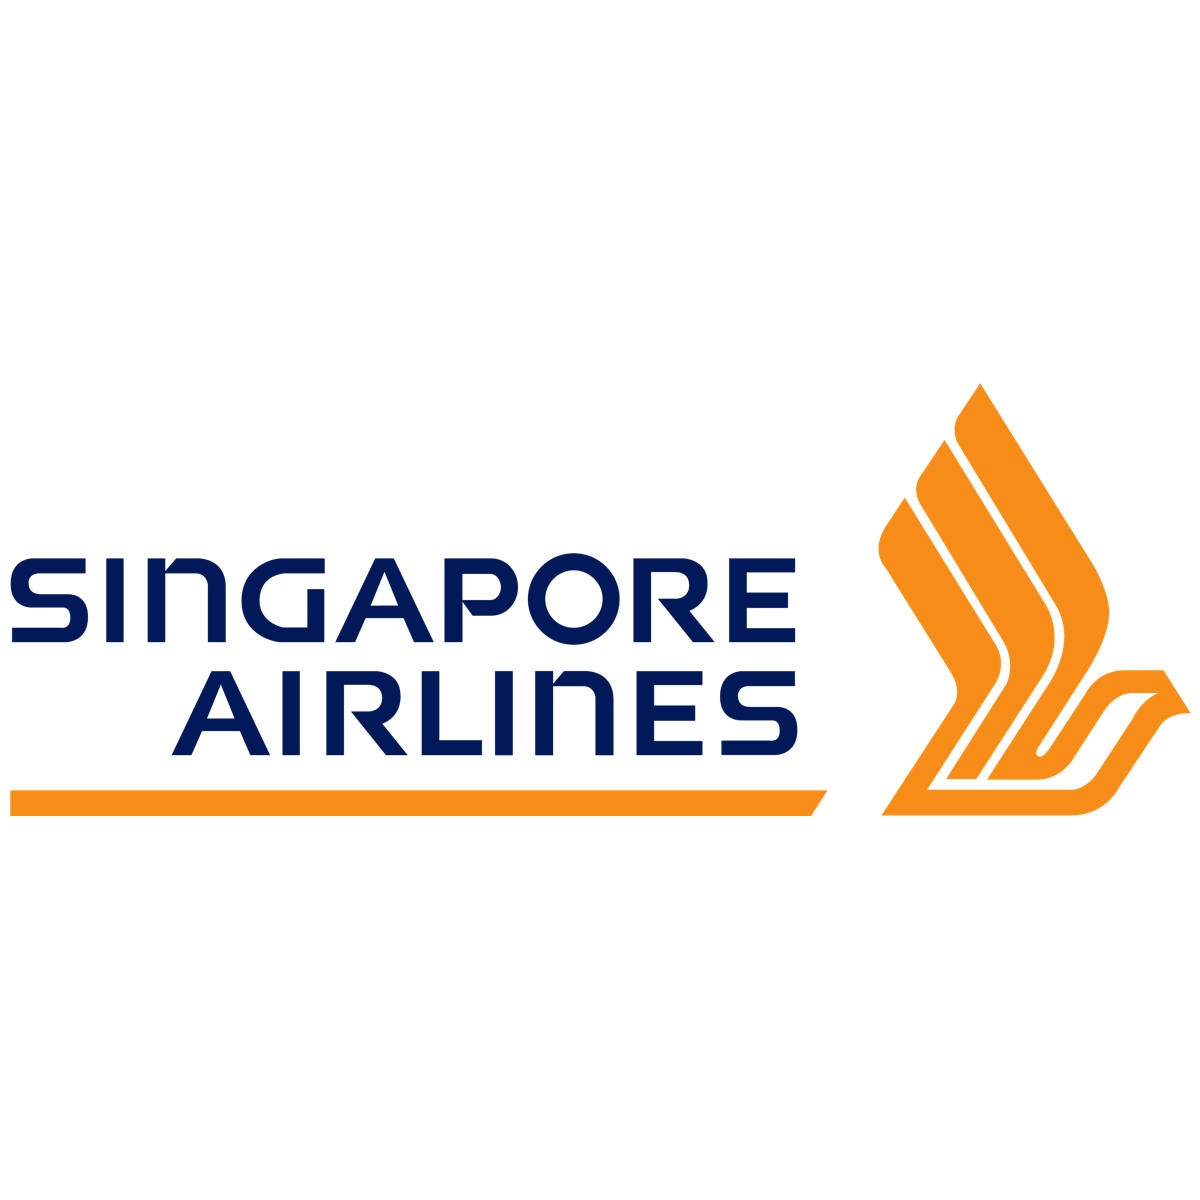 Singapore Airlines - CGS-CIMB Research 2018-07-27: Respectable Performance Despite Challenges